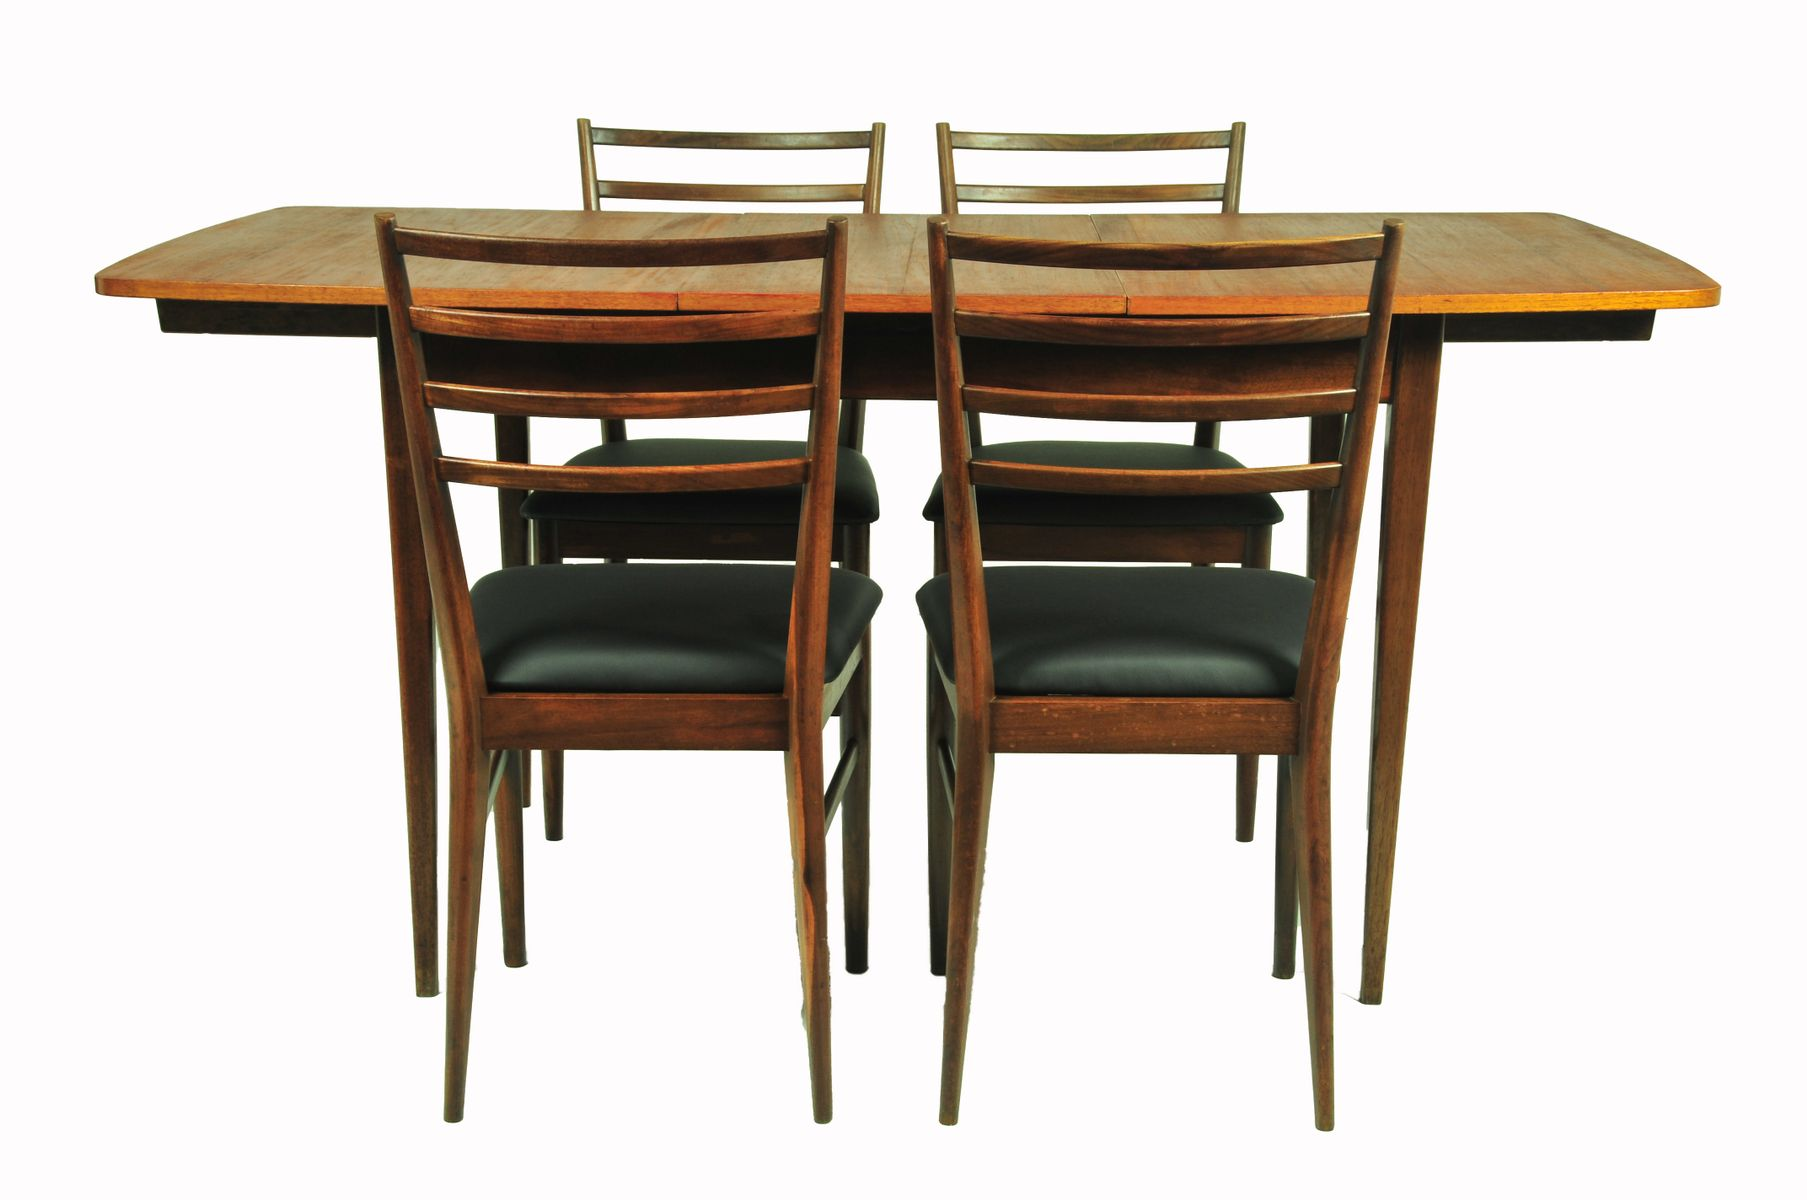 Mid Century Danish Dining Set for sale at Pamono : mid century danish dining set 1 from www.pamono.com size 1807 x 1200 jpeg 107kB